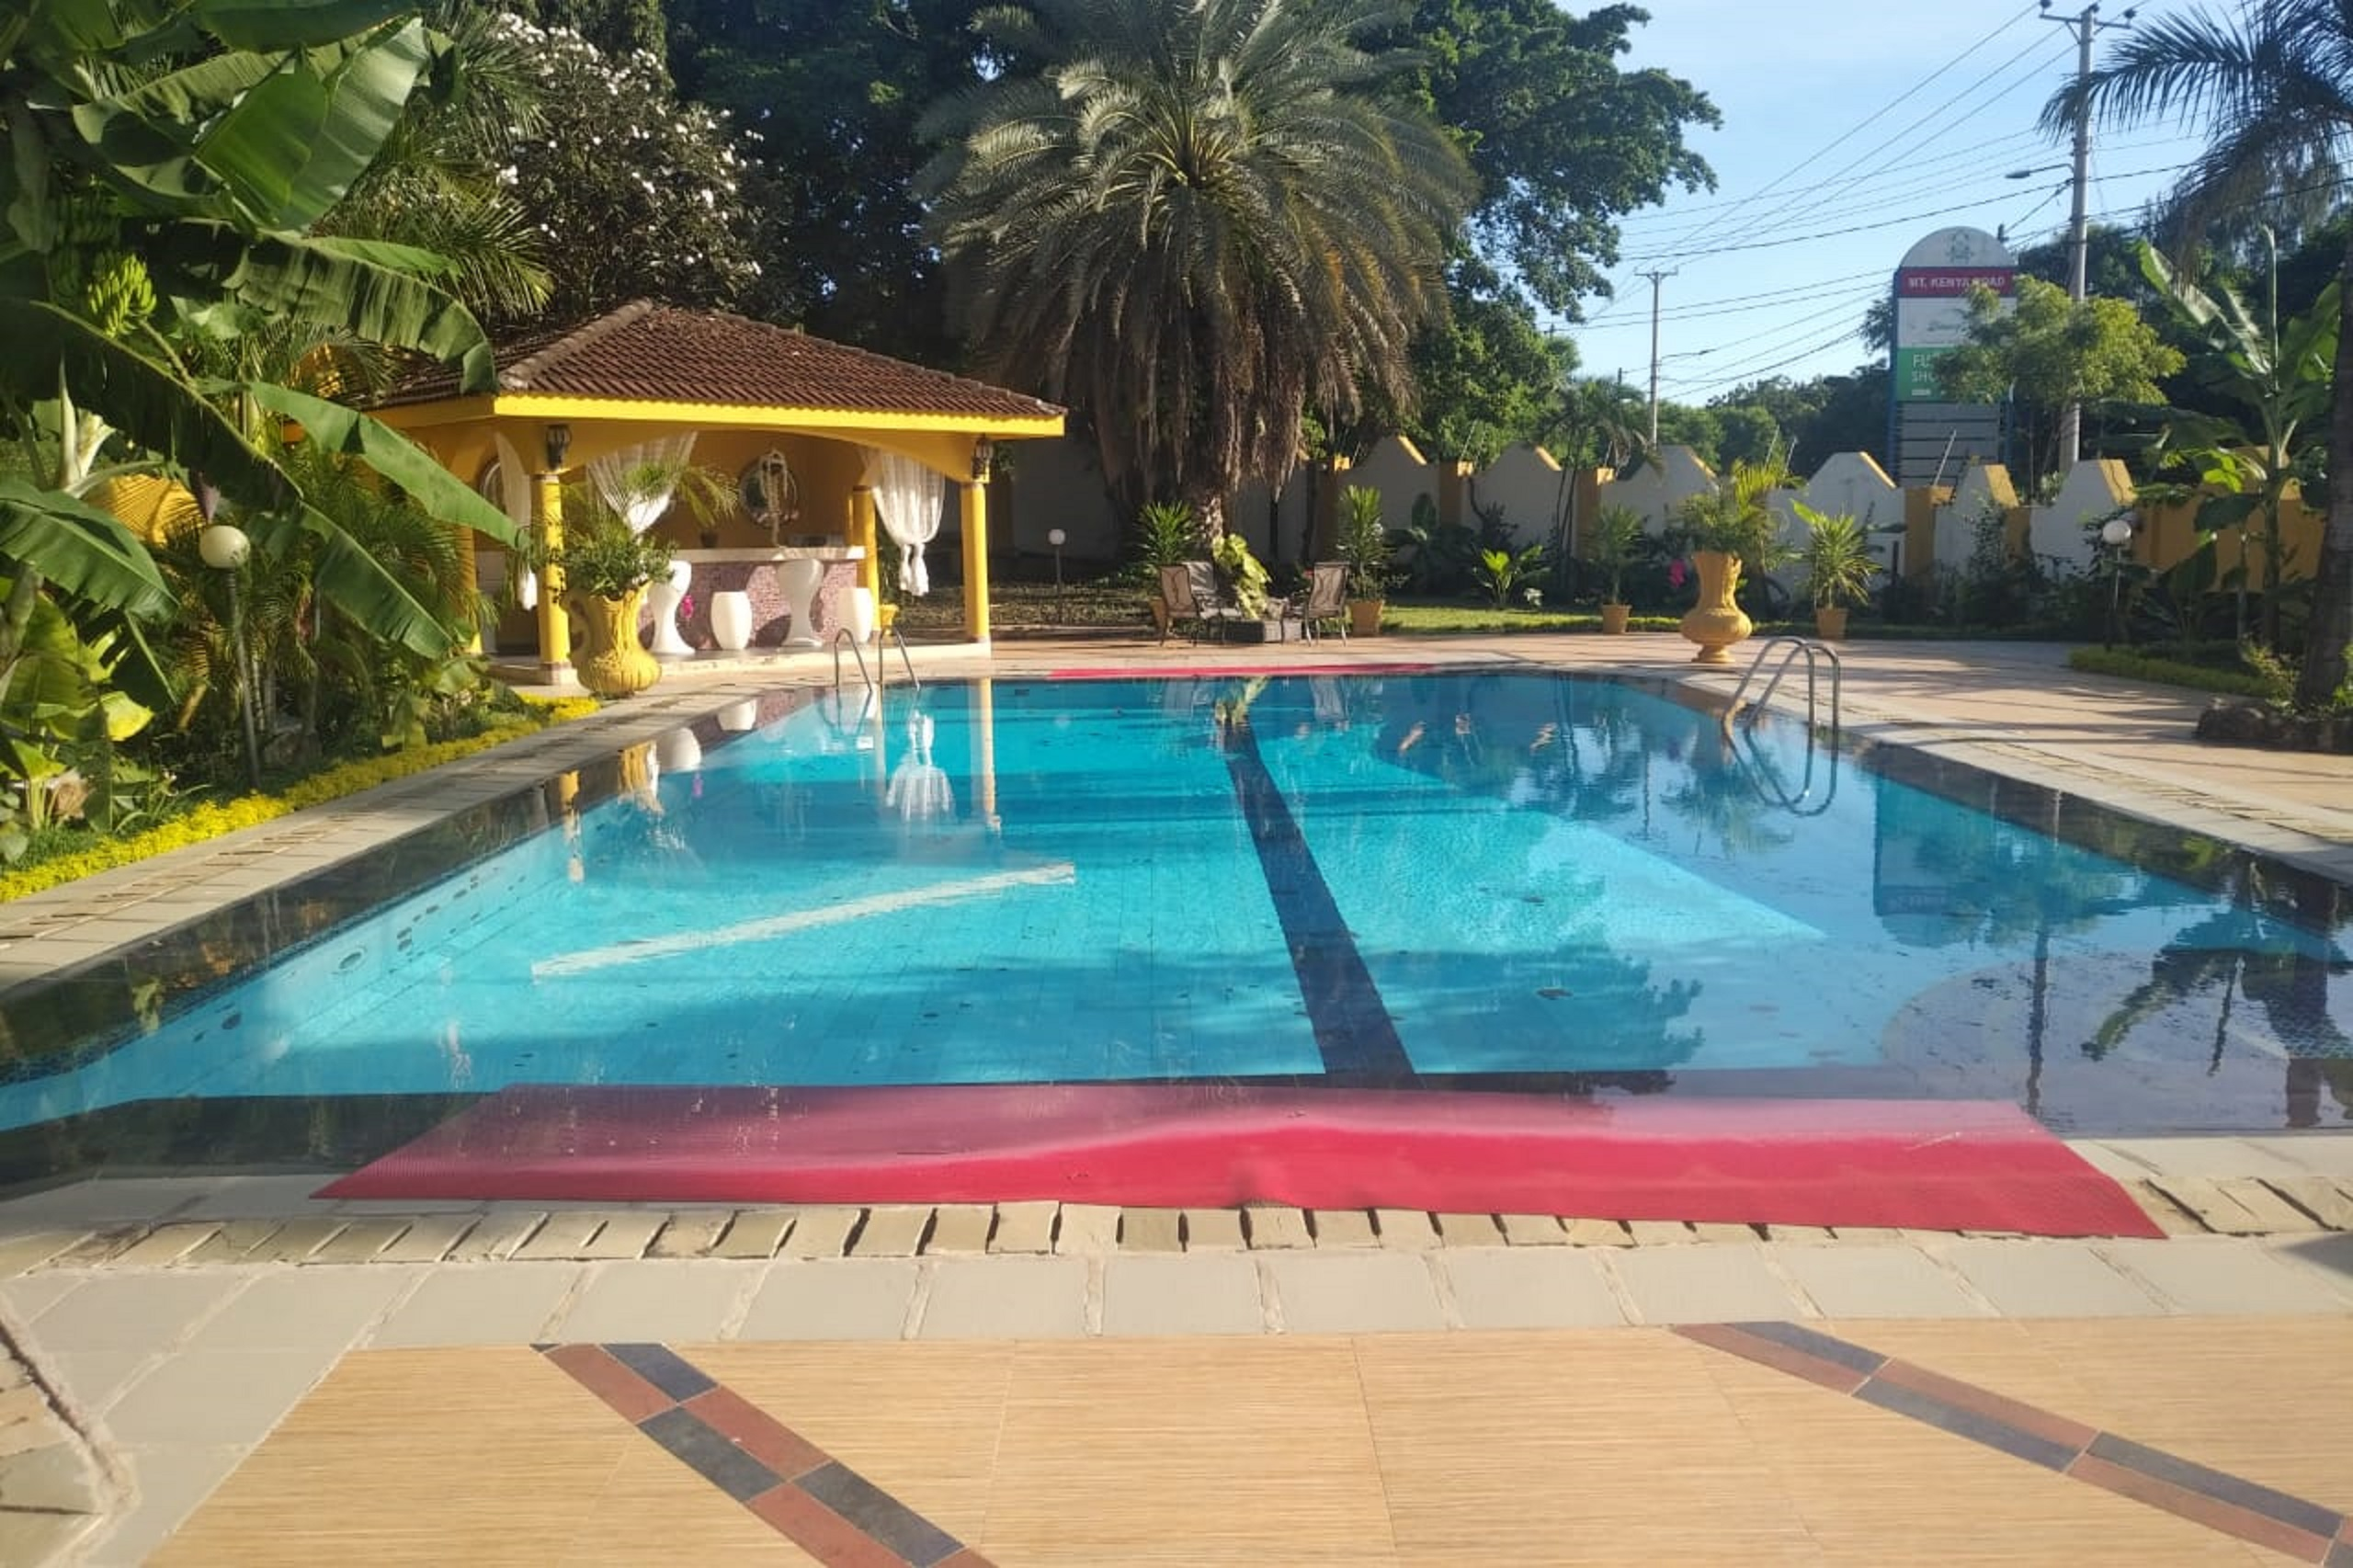 6 Bedroom House For Rent in Nyali